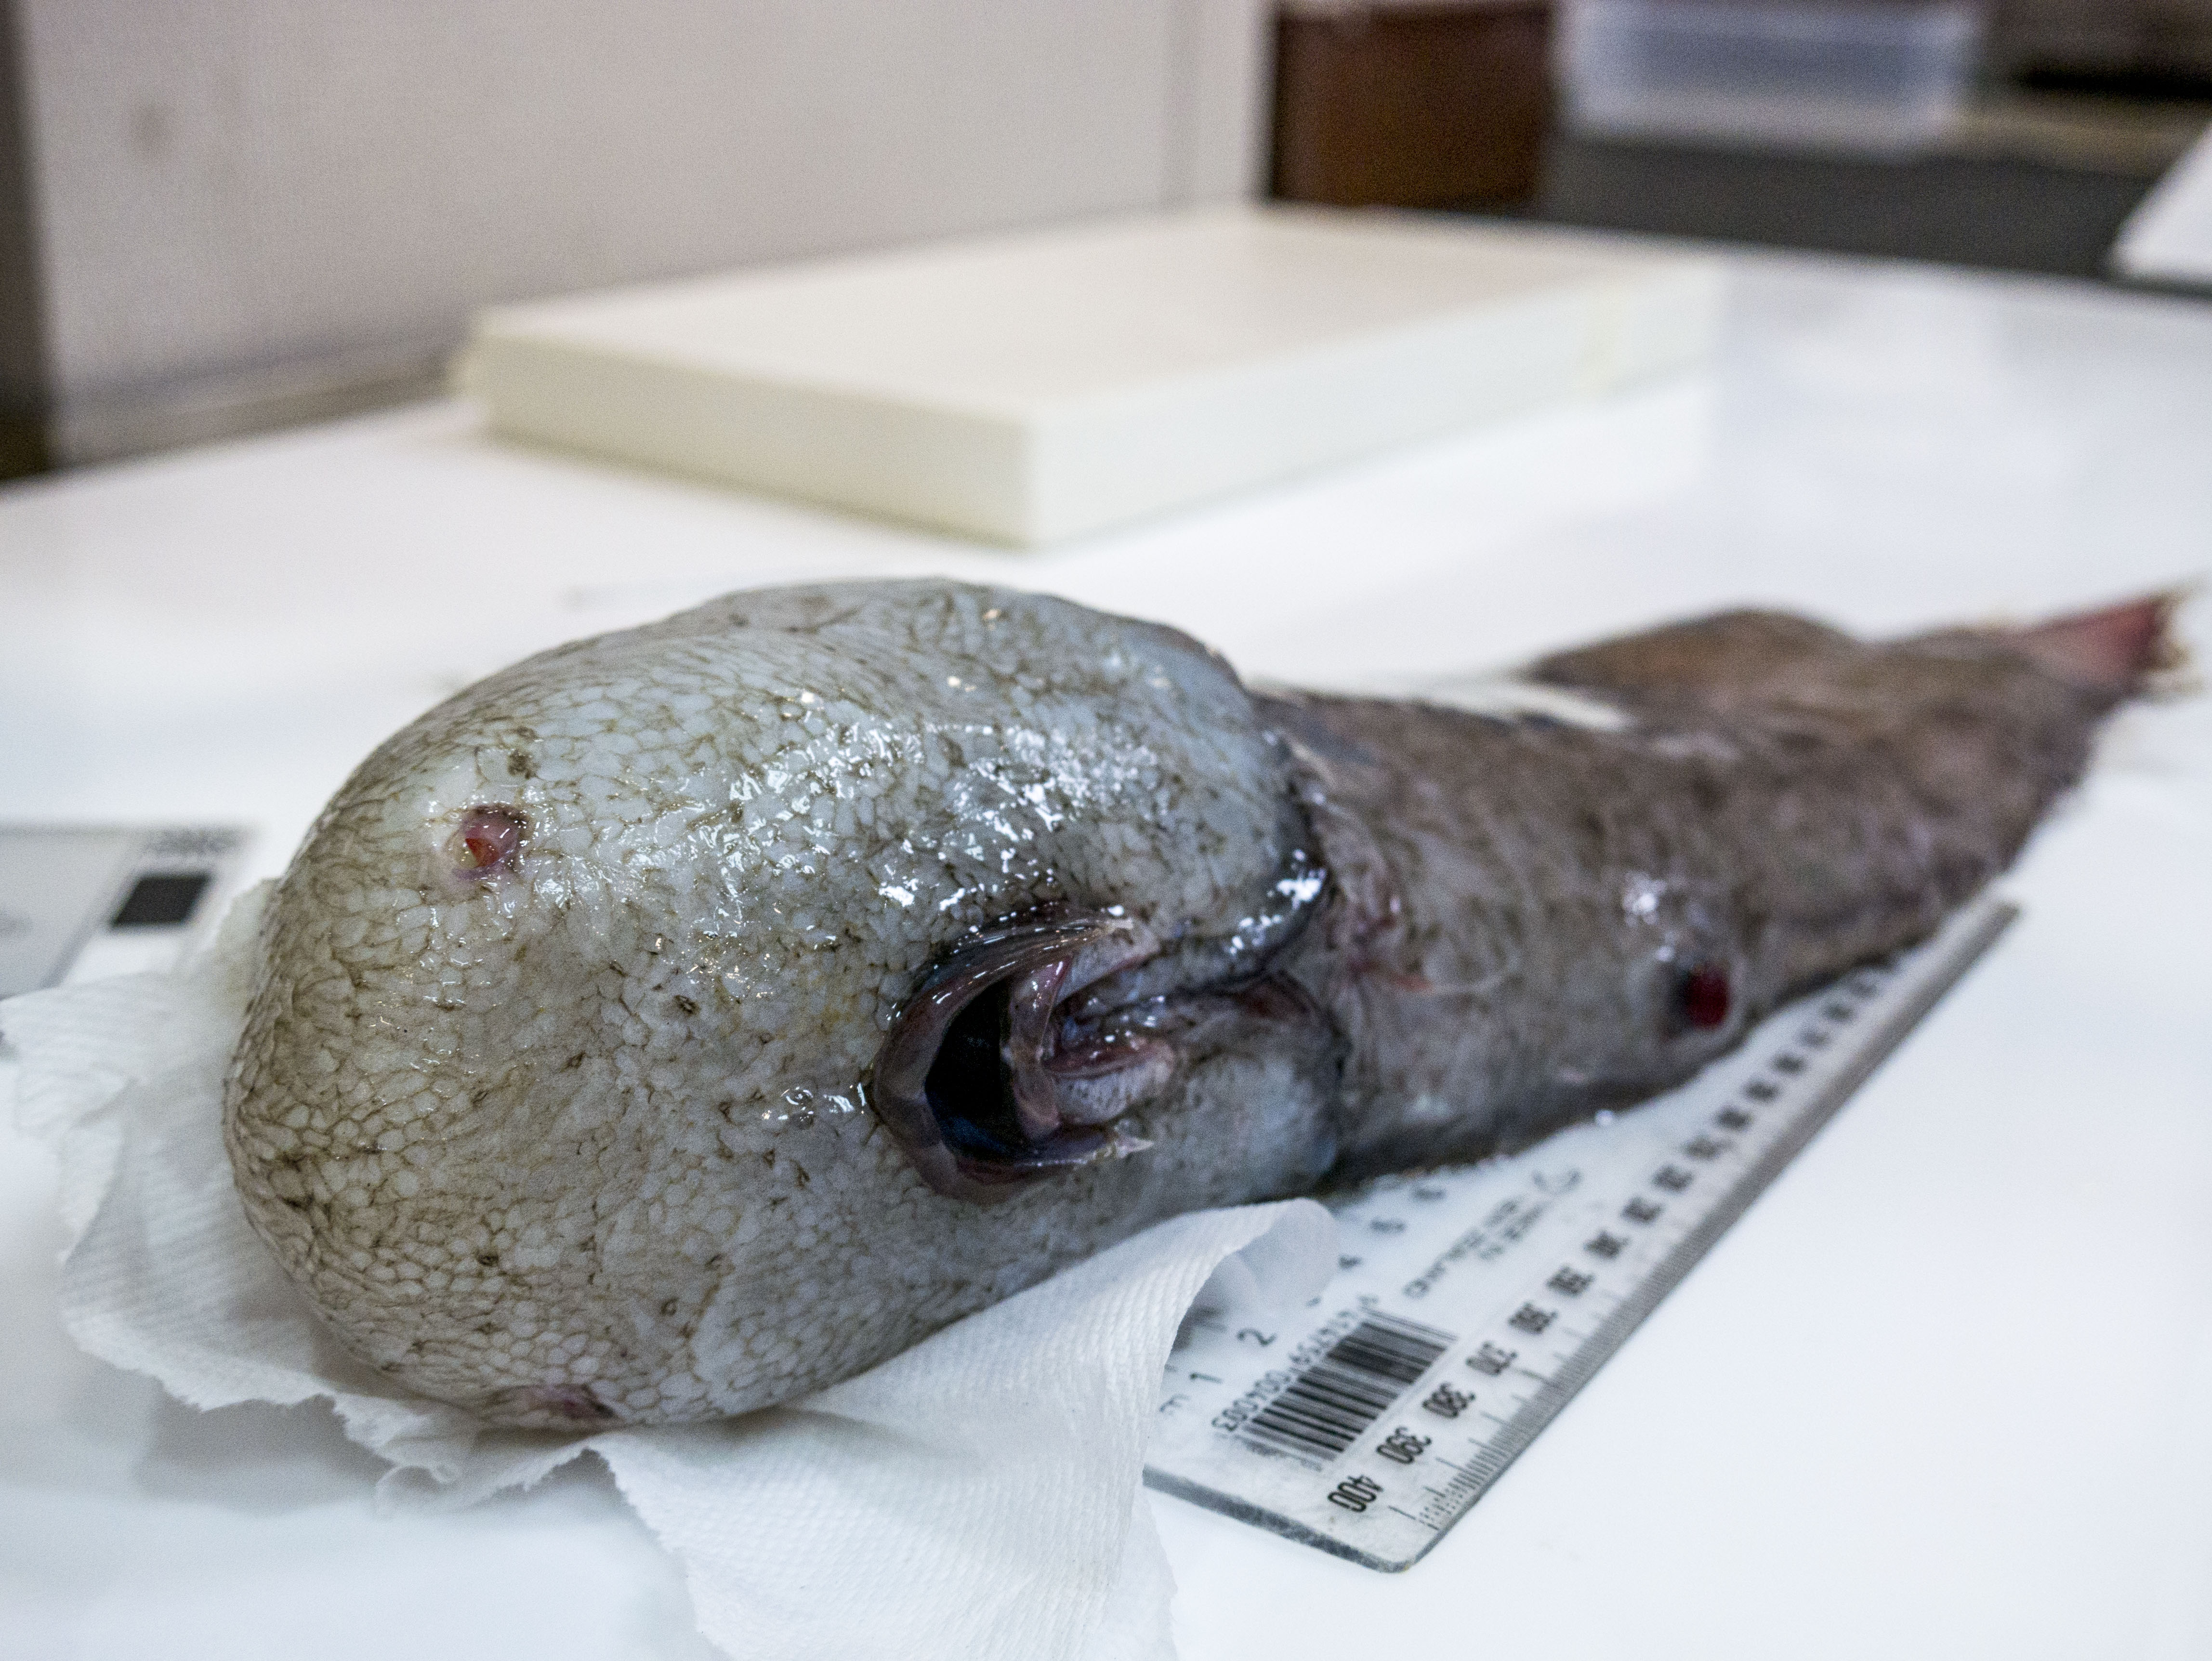 Specimen of a faceless fish.